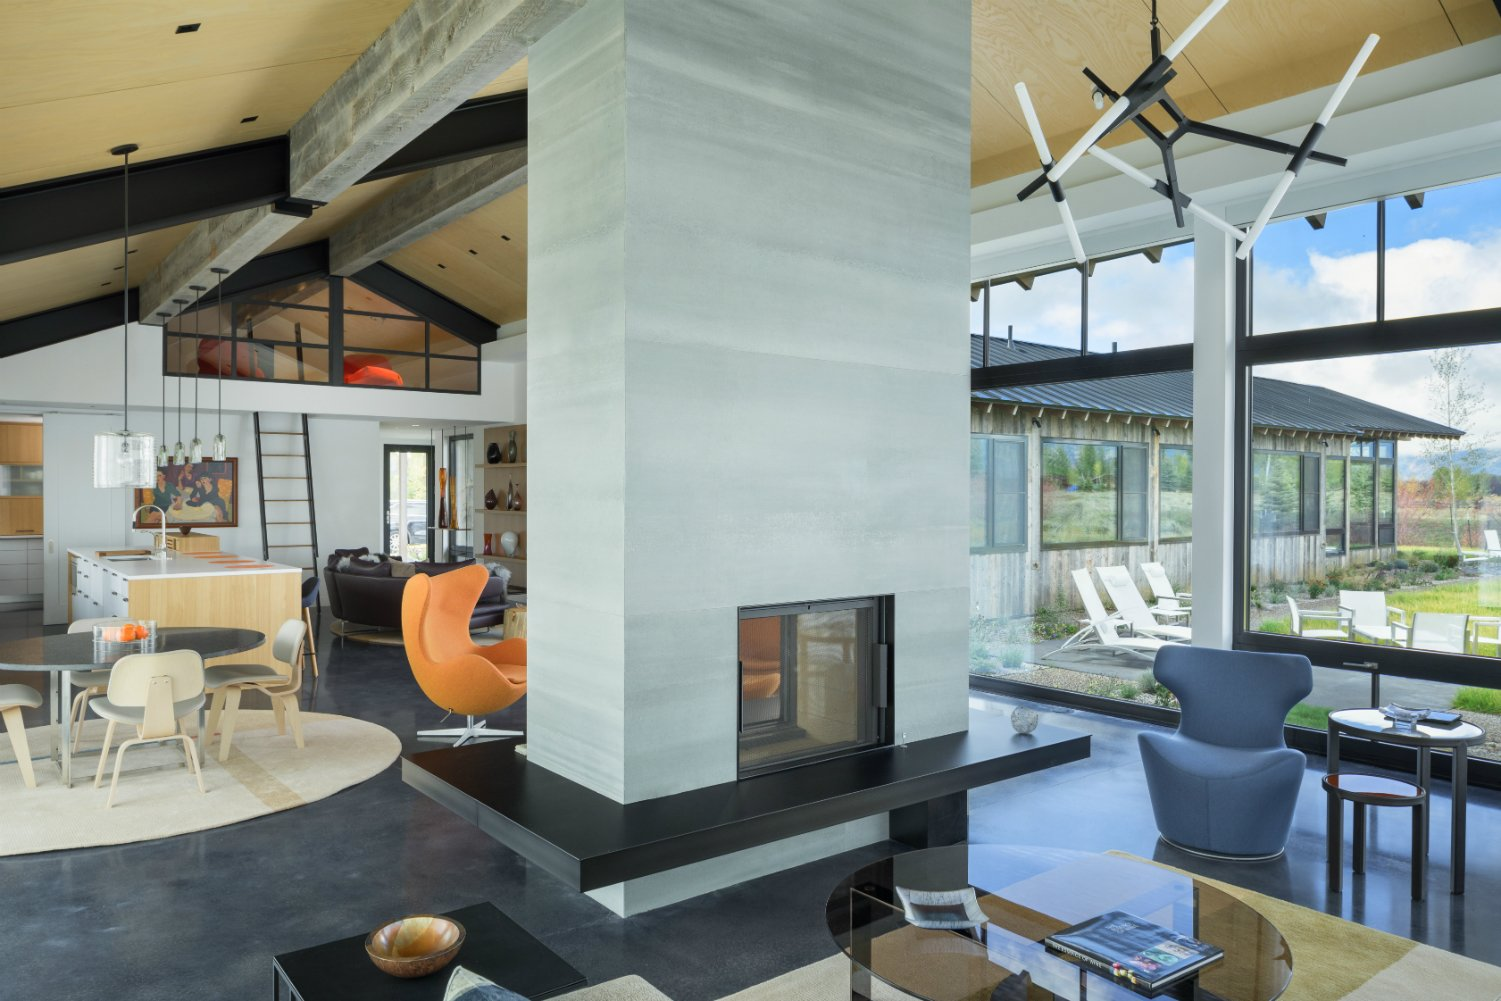 Living, Concrete, Two-Sided, Ceiling, Coffee Tables, and Gas Burning Great Room  Best Living Two-Sided Ceiling Photos from The Landing